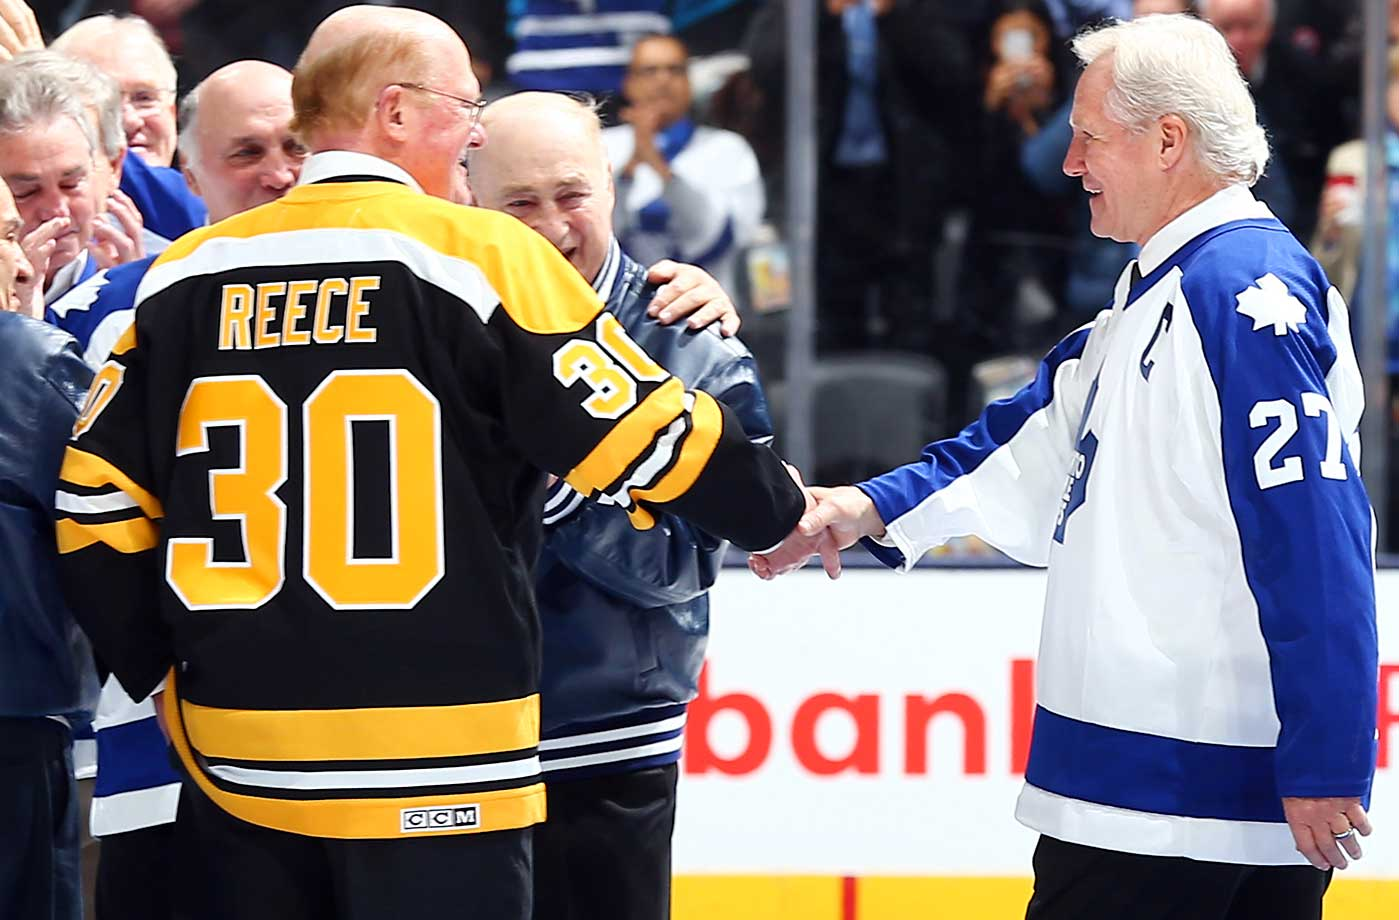 Former Toronto Maple Leaf Darryl Sittler shakes hands with former Boston Bruin Dave Reece during an on ice ceremony to commemorate Darryl Sittlers 10-point night. The ceremony was held before action between the Toronto Maple Leafs and the New Jersey Devils during at Air Canada Centre in Toronto.